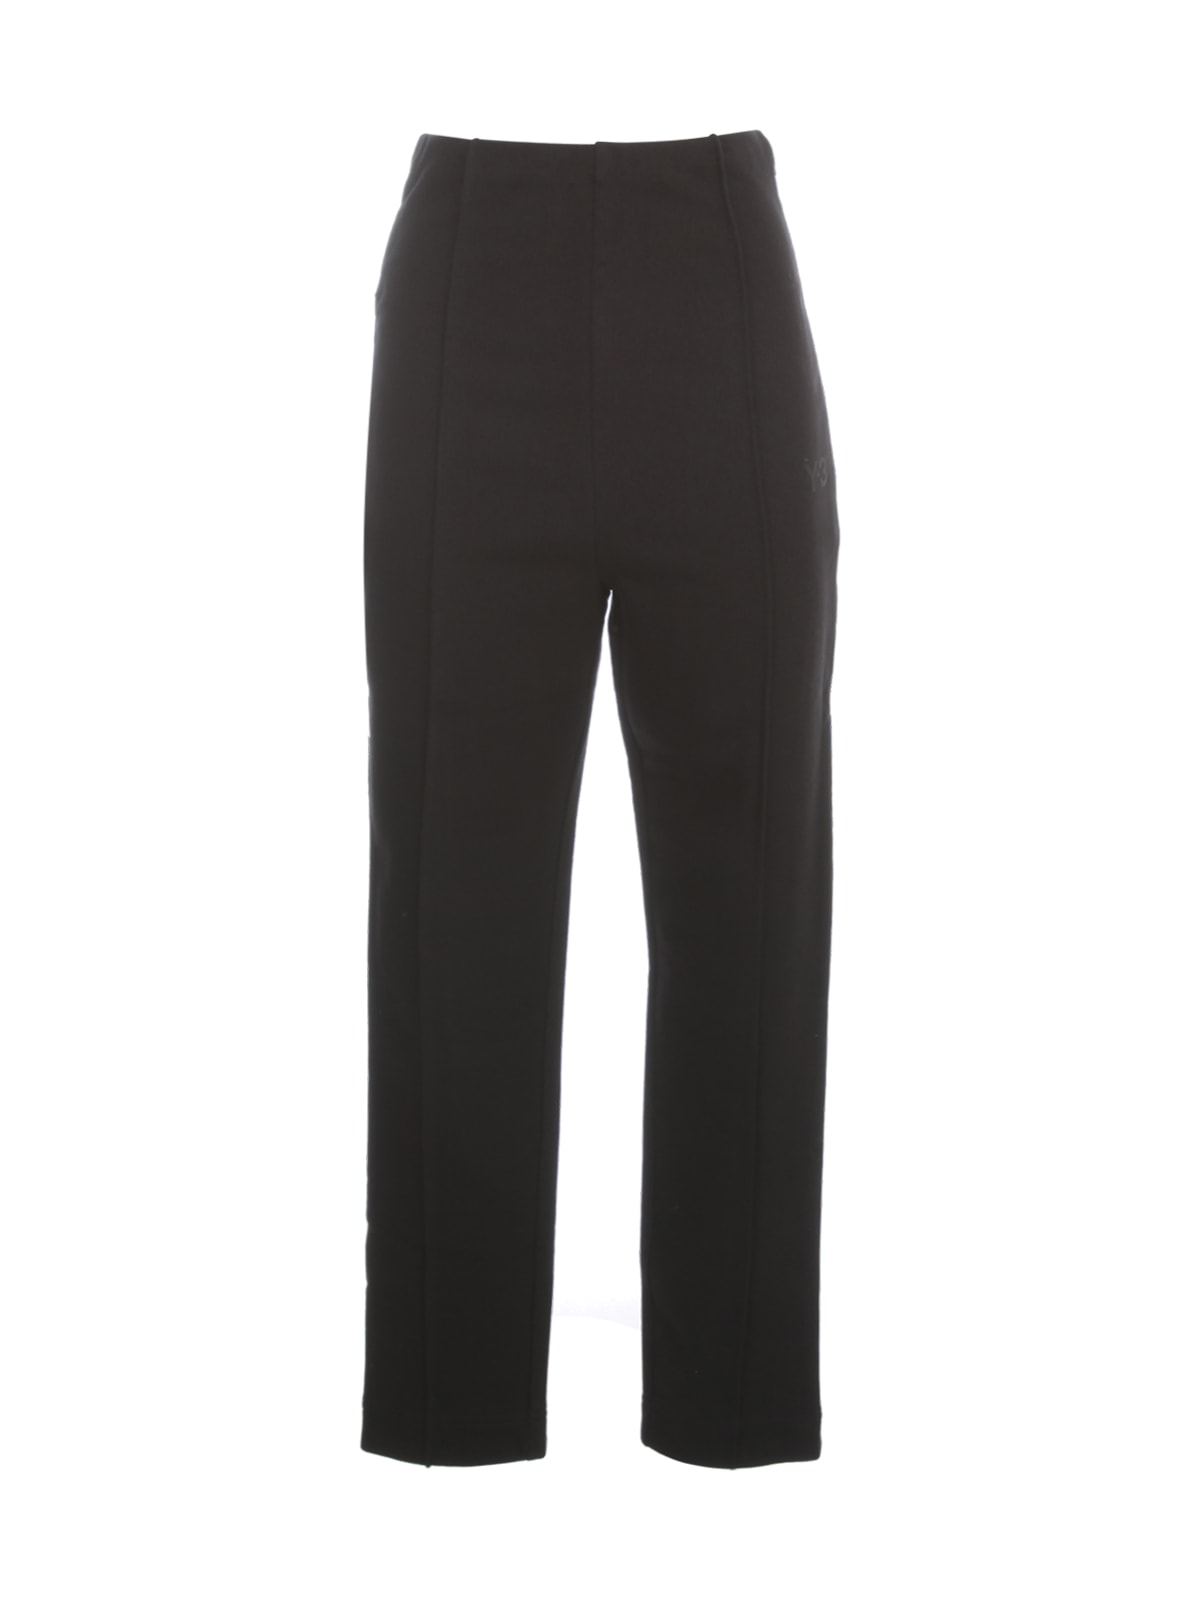 Y-3 High Waisted Knitted Pants